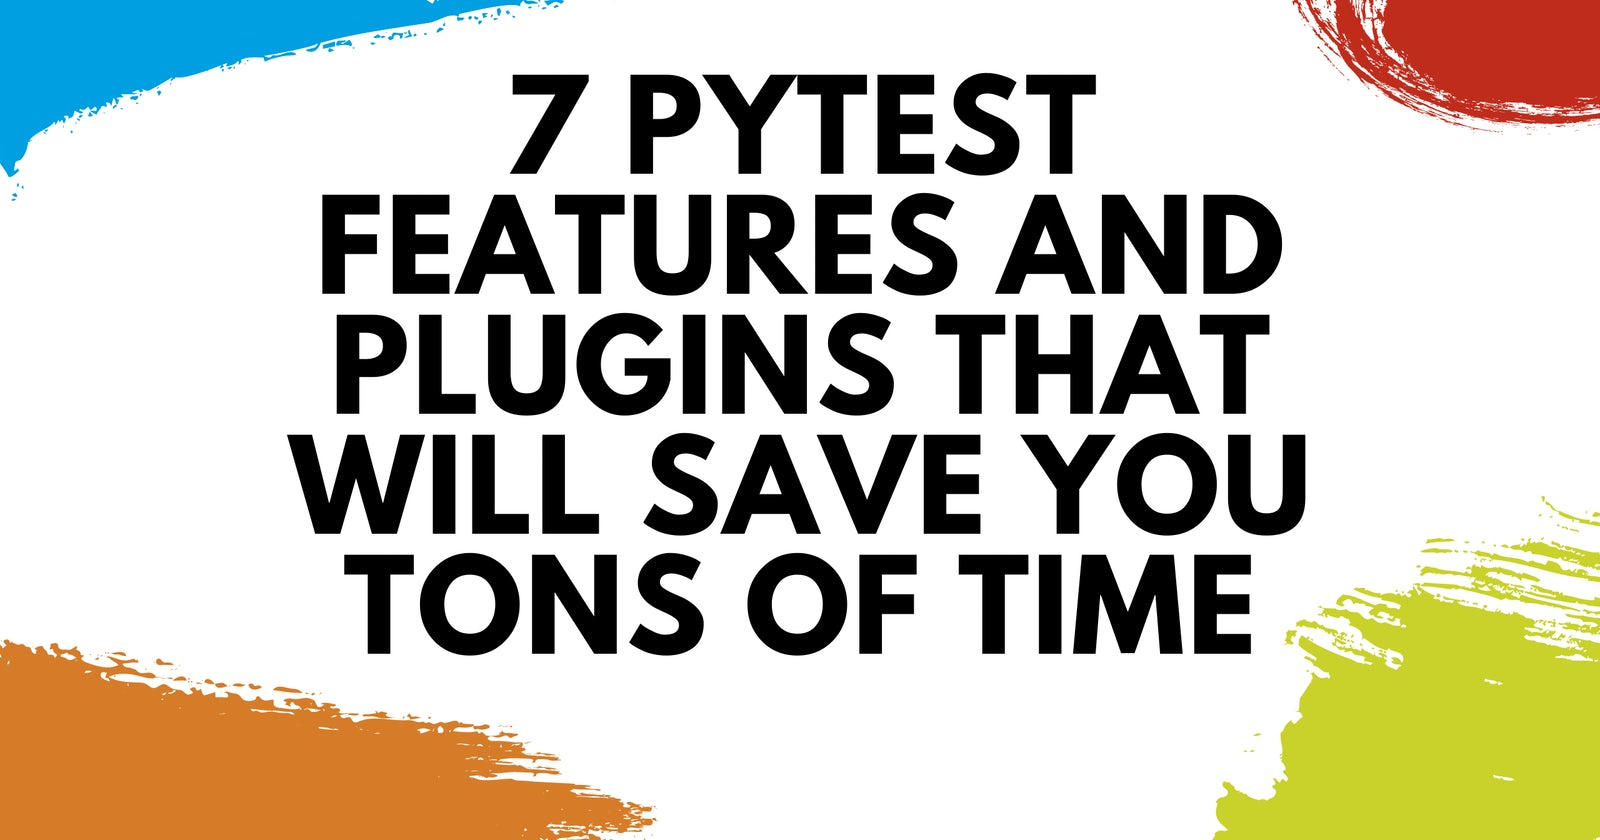 7 pytest Features and Plugins That Will Save You Tons of Time